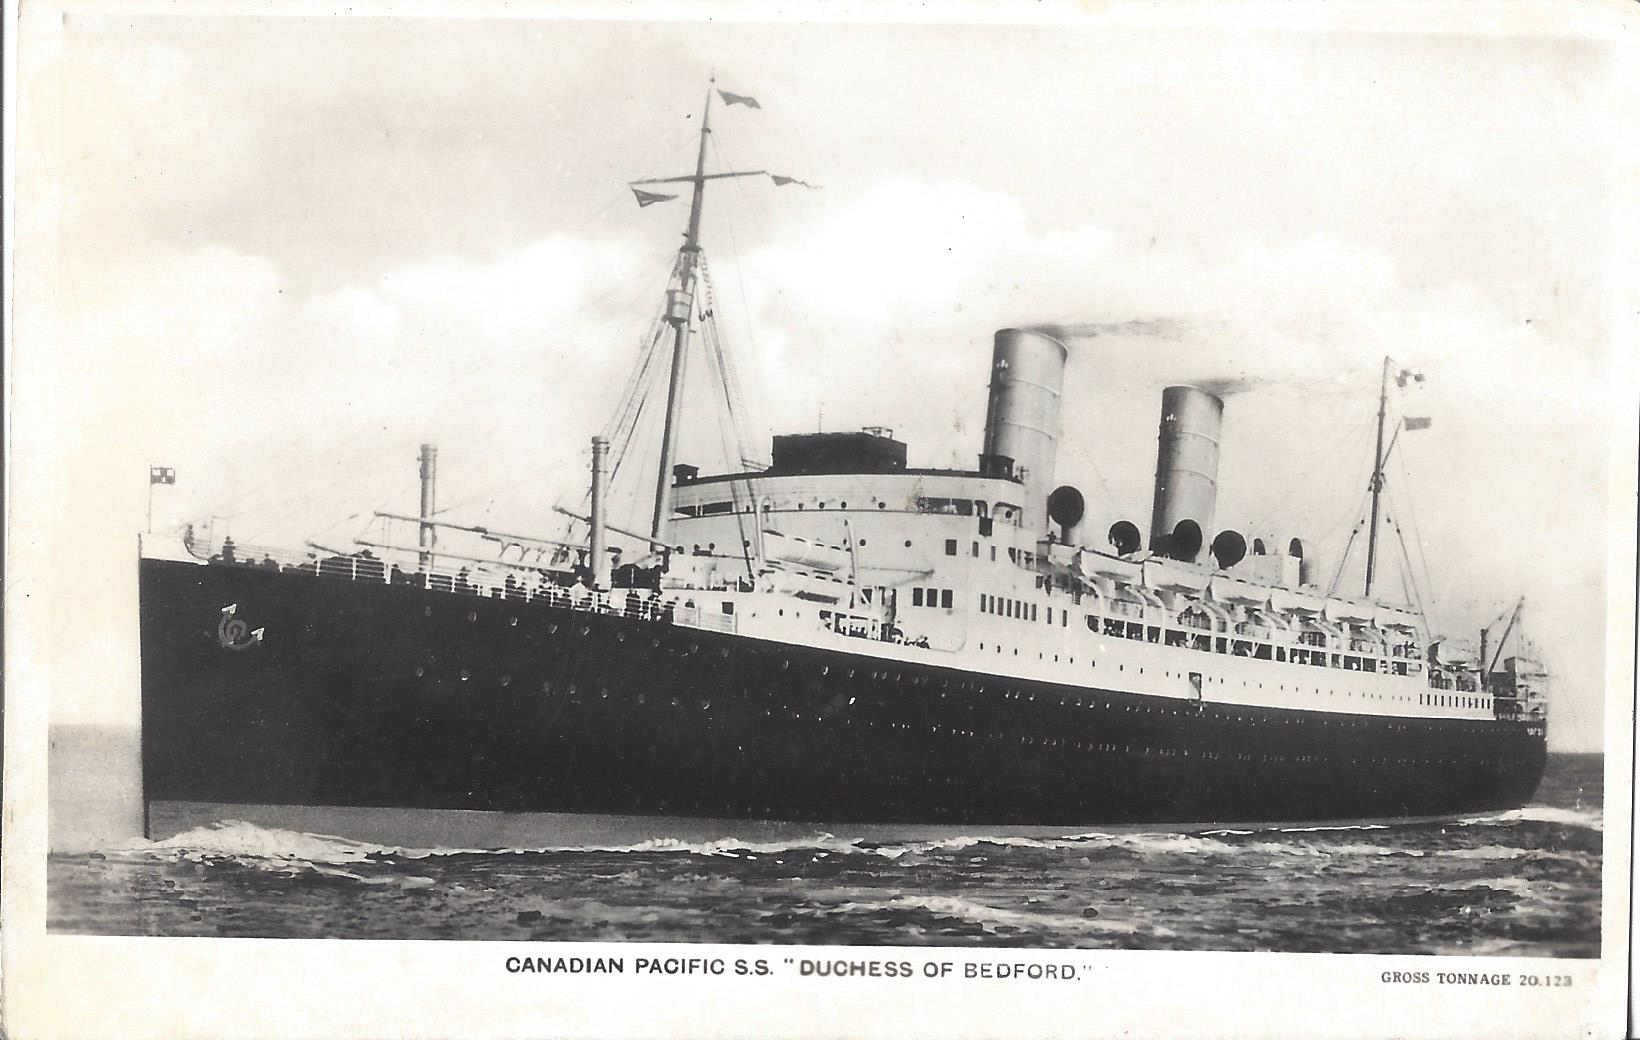 Canadian Pacific Steamship's modern SS Duchess of Bedford as pictured on a Real Photo card from an unidentified publisher